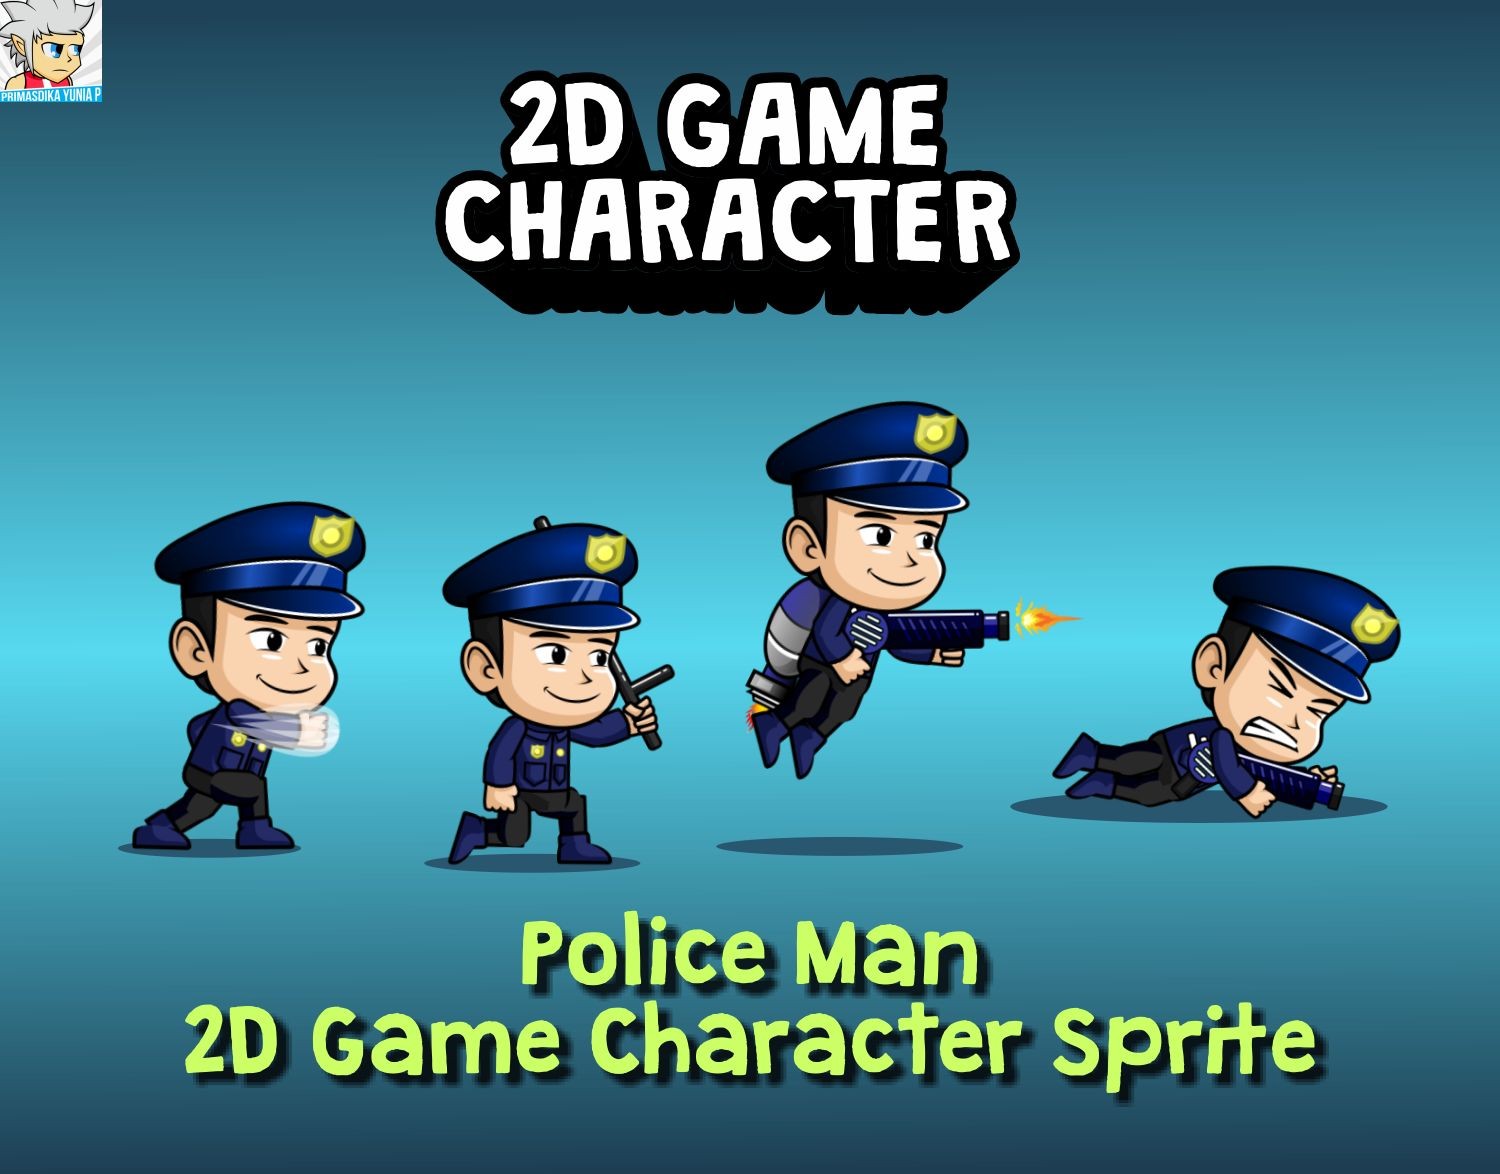 Police Man 2D Game Character Sprite Screenshot 1